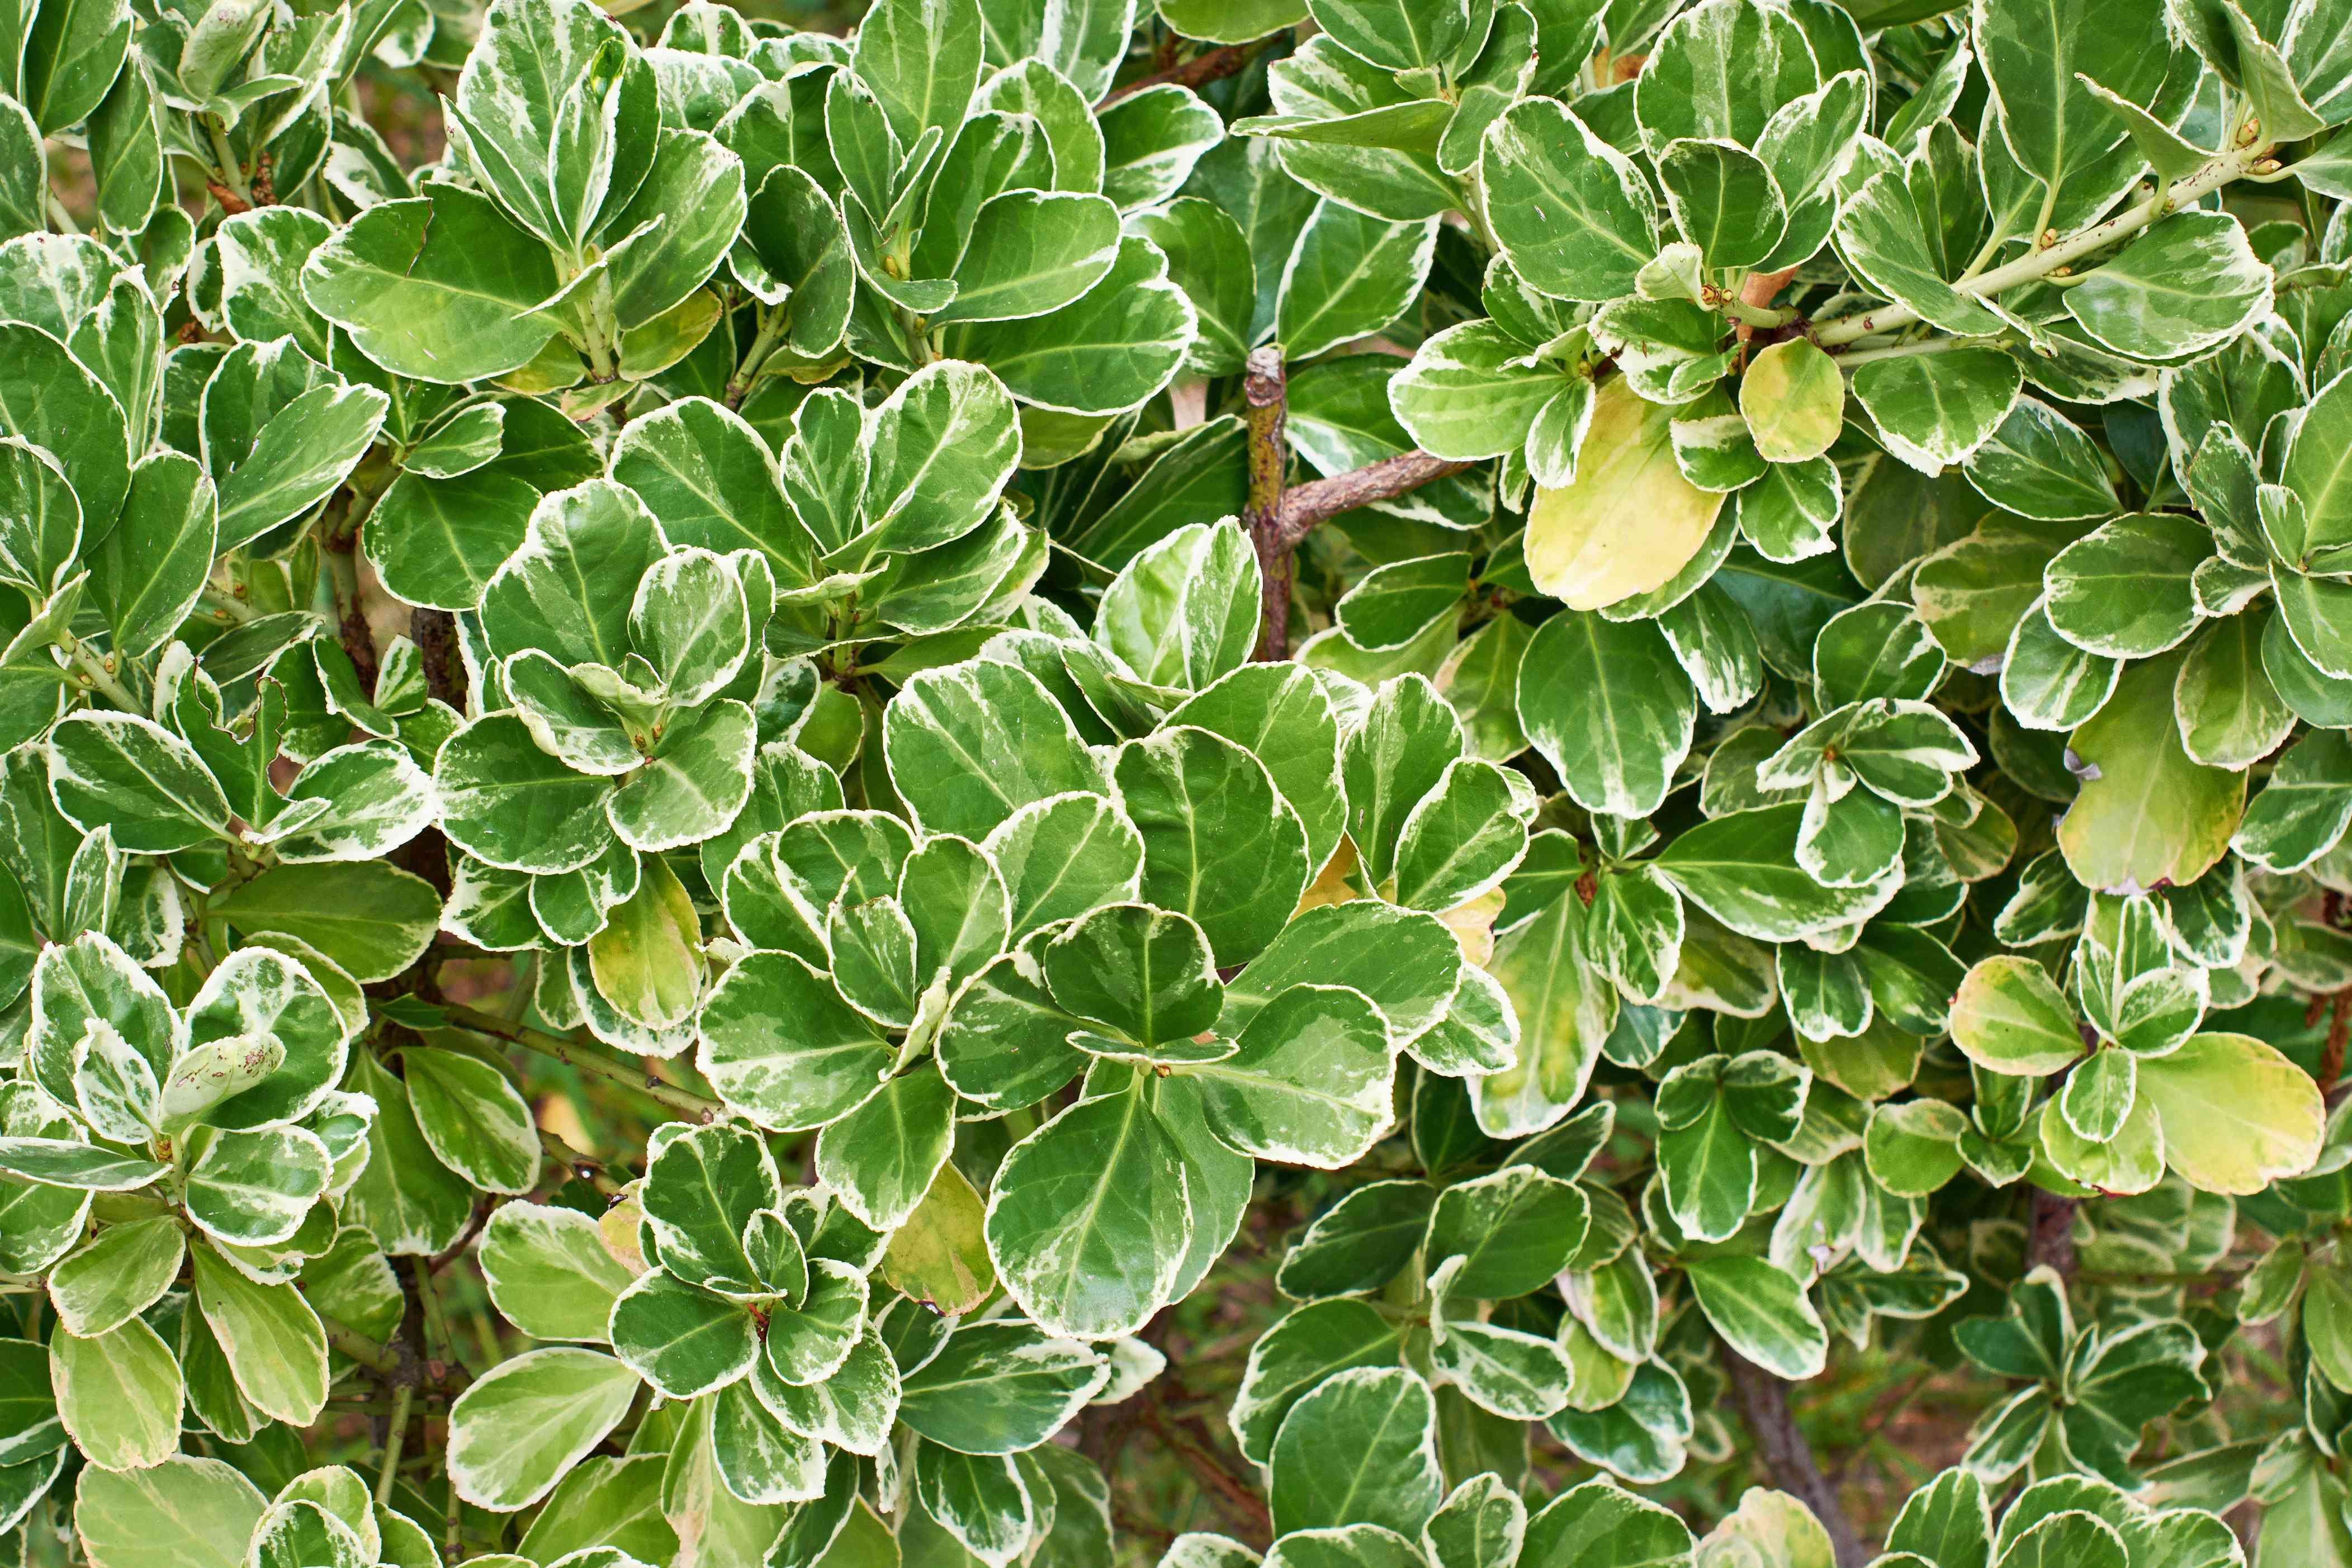 Leaves of plants Emerald Gaiety Euonymus